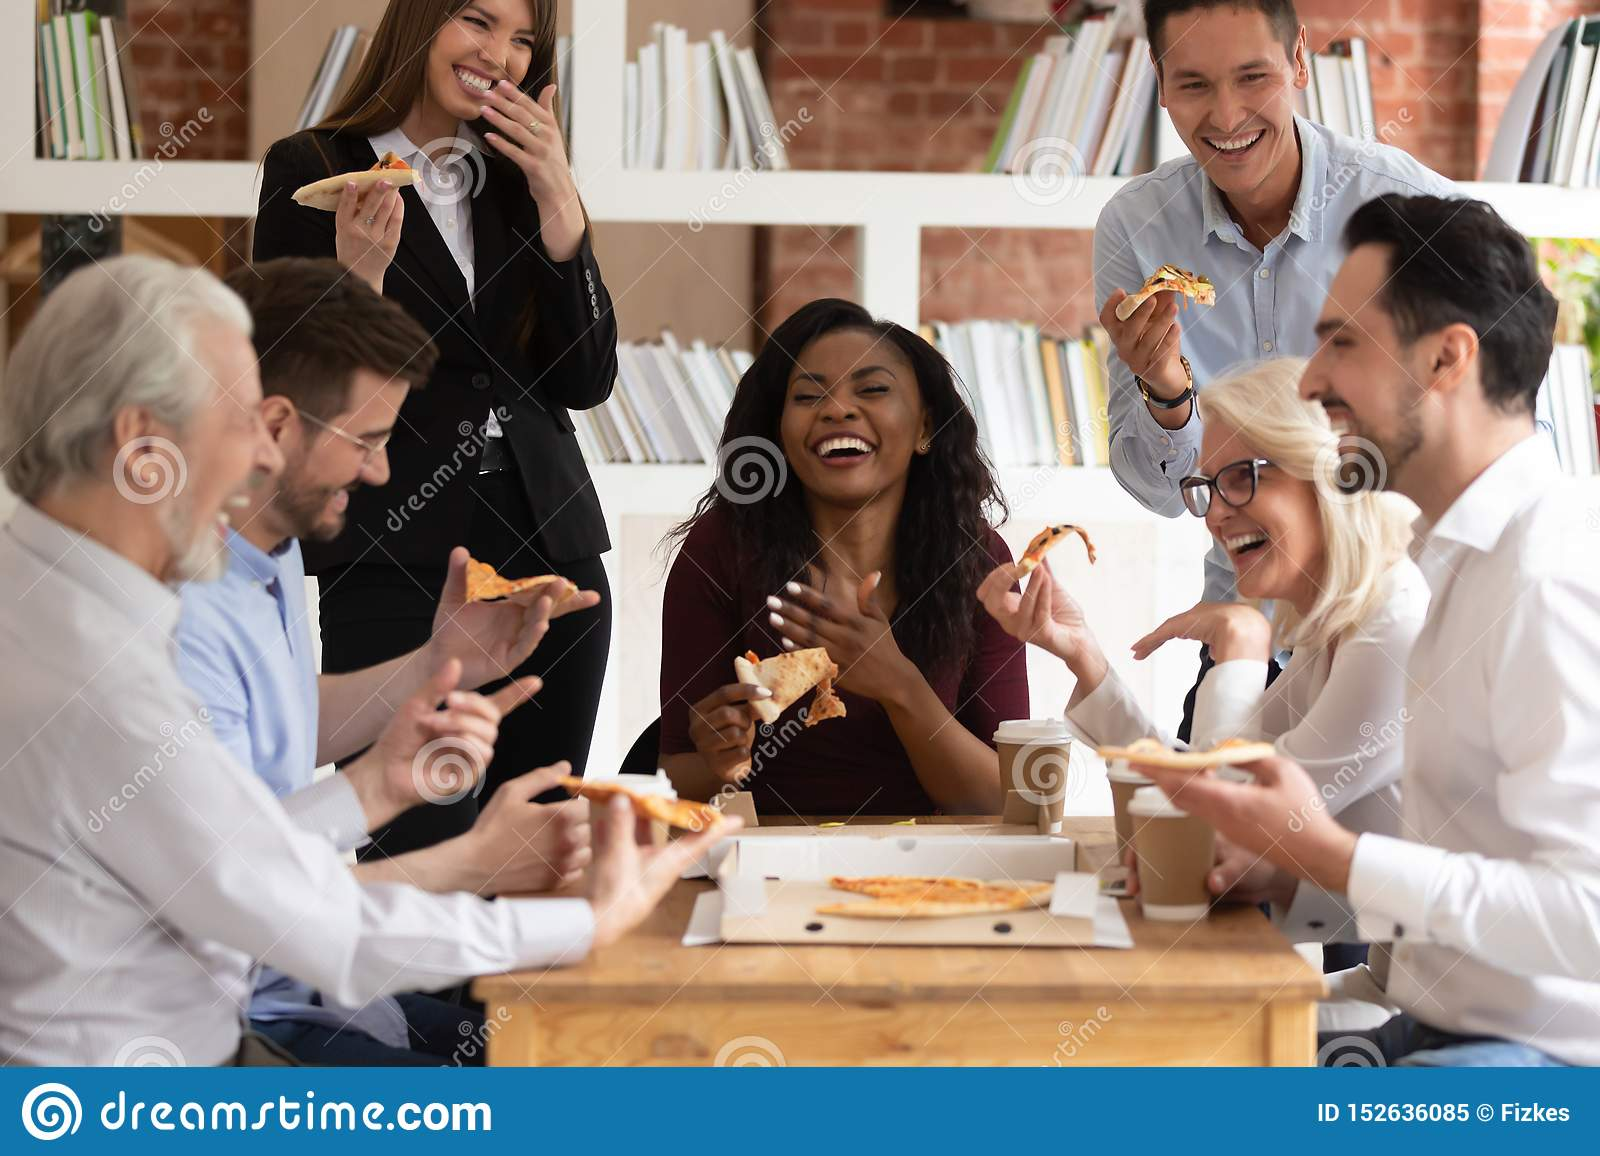 cheerful-multiracial-office-business-people-laugh-share-takeaway-pizza-together-friendly-happy-diverse-young-old-employees-152636085.jpg